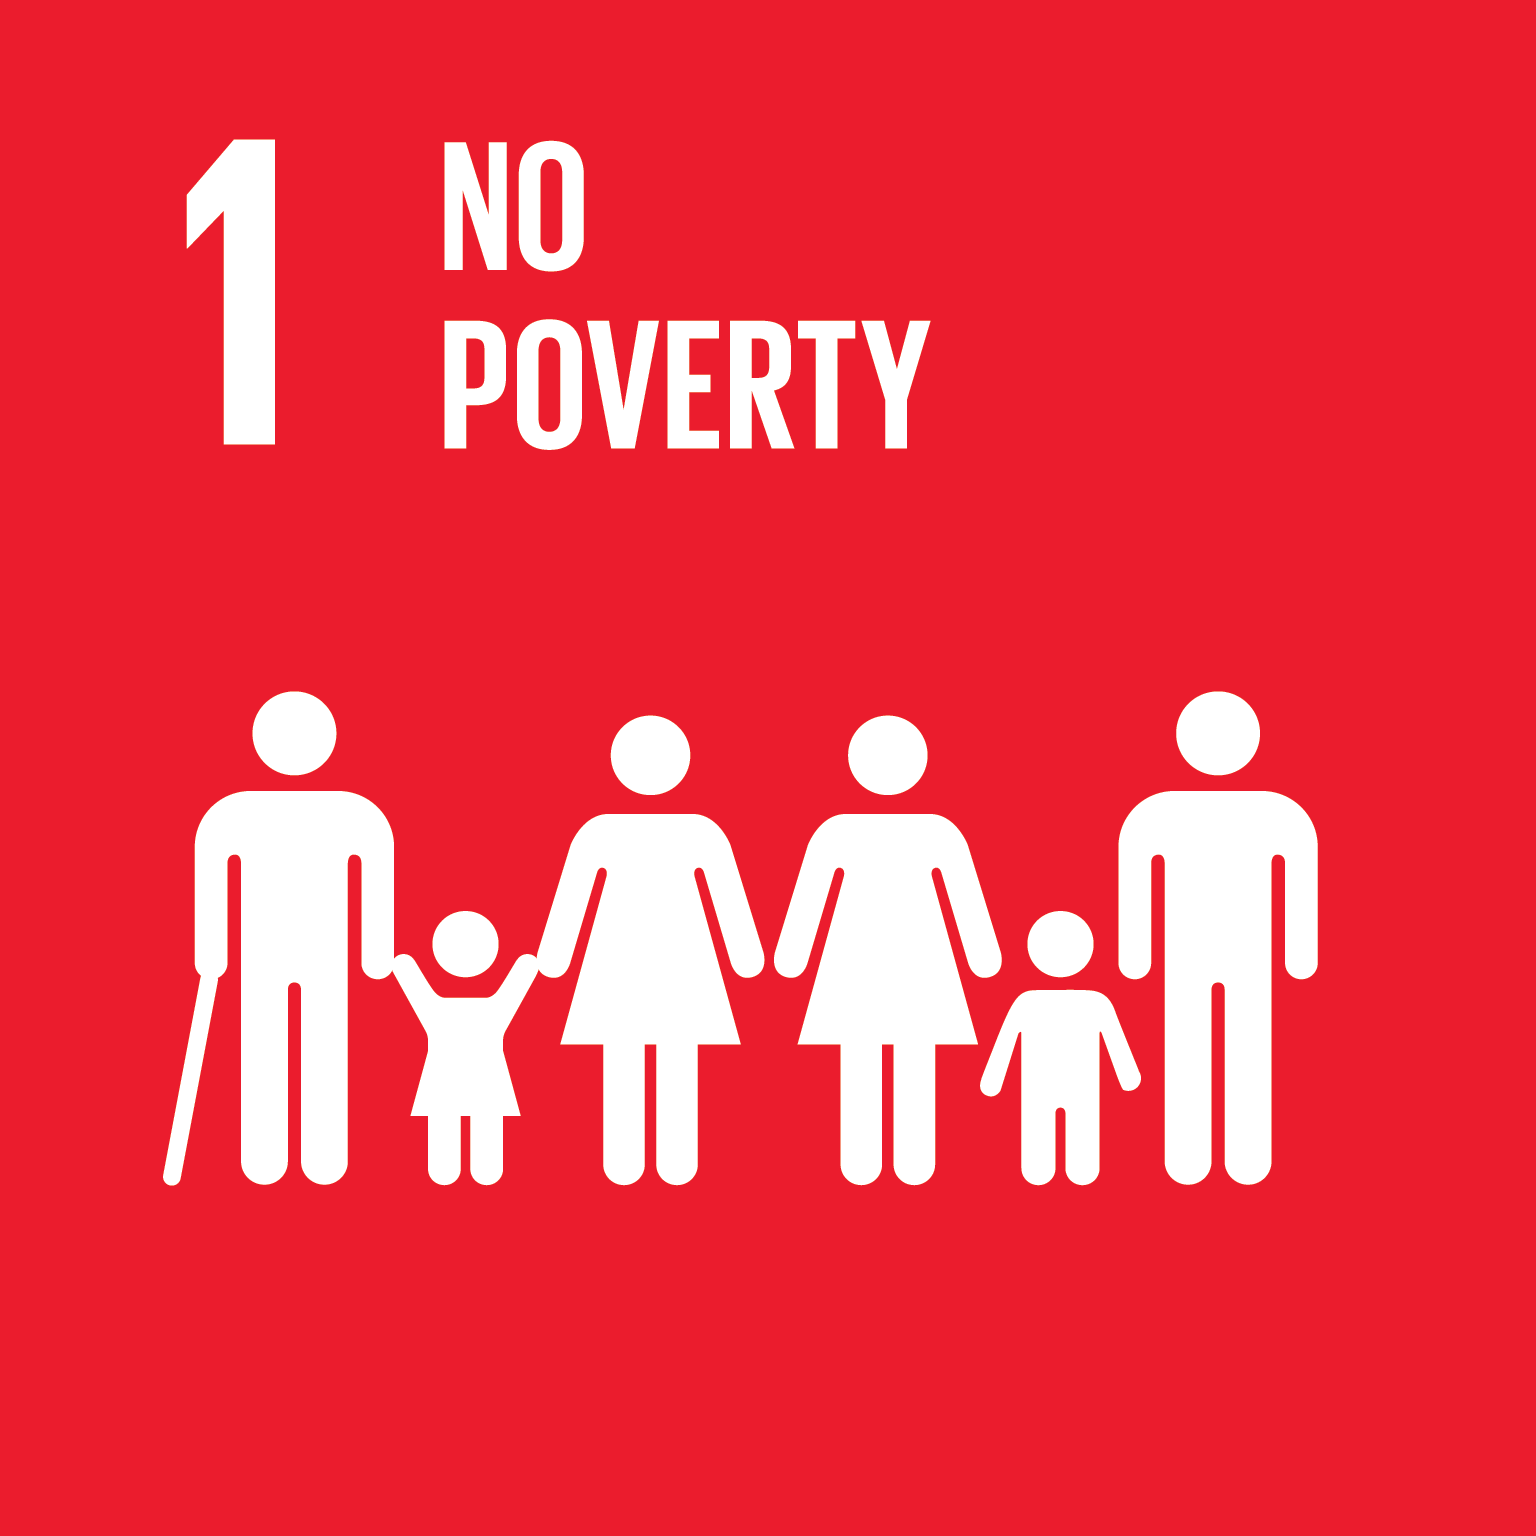 Goal 1: No Poverty, the text of this infographic is listed below